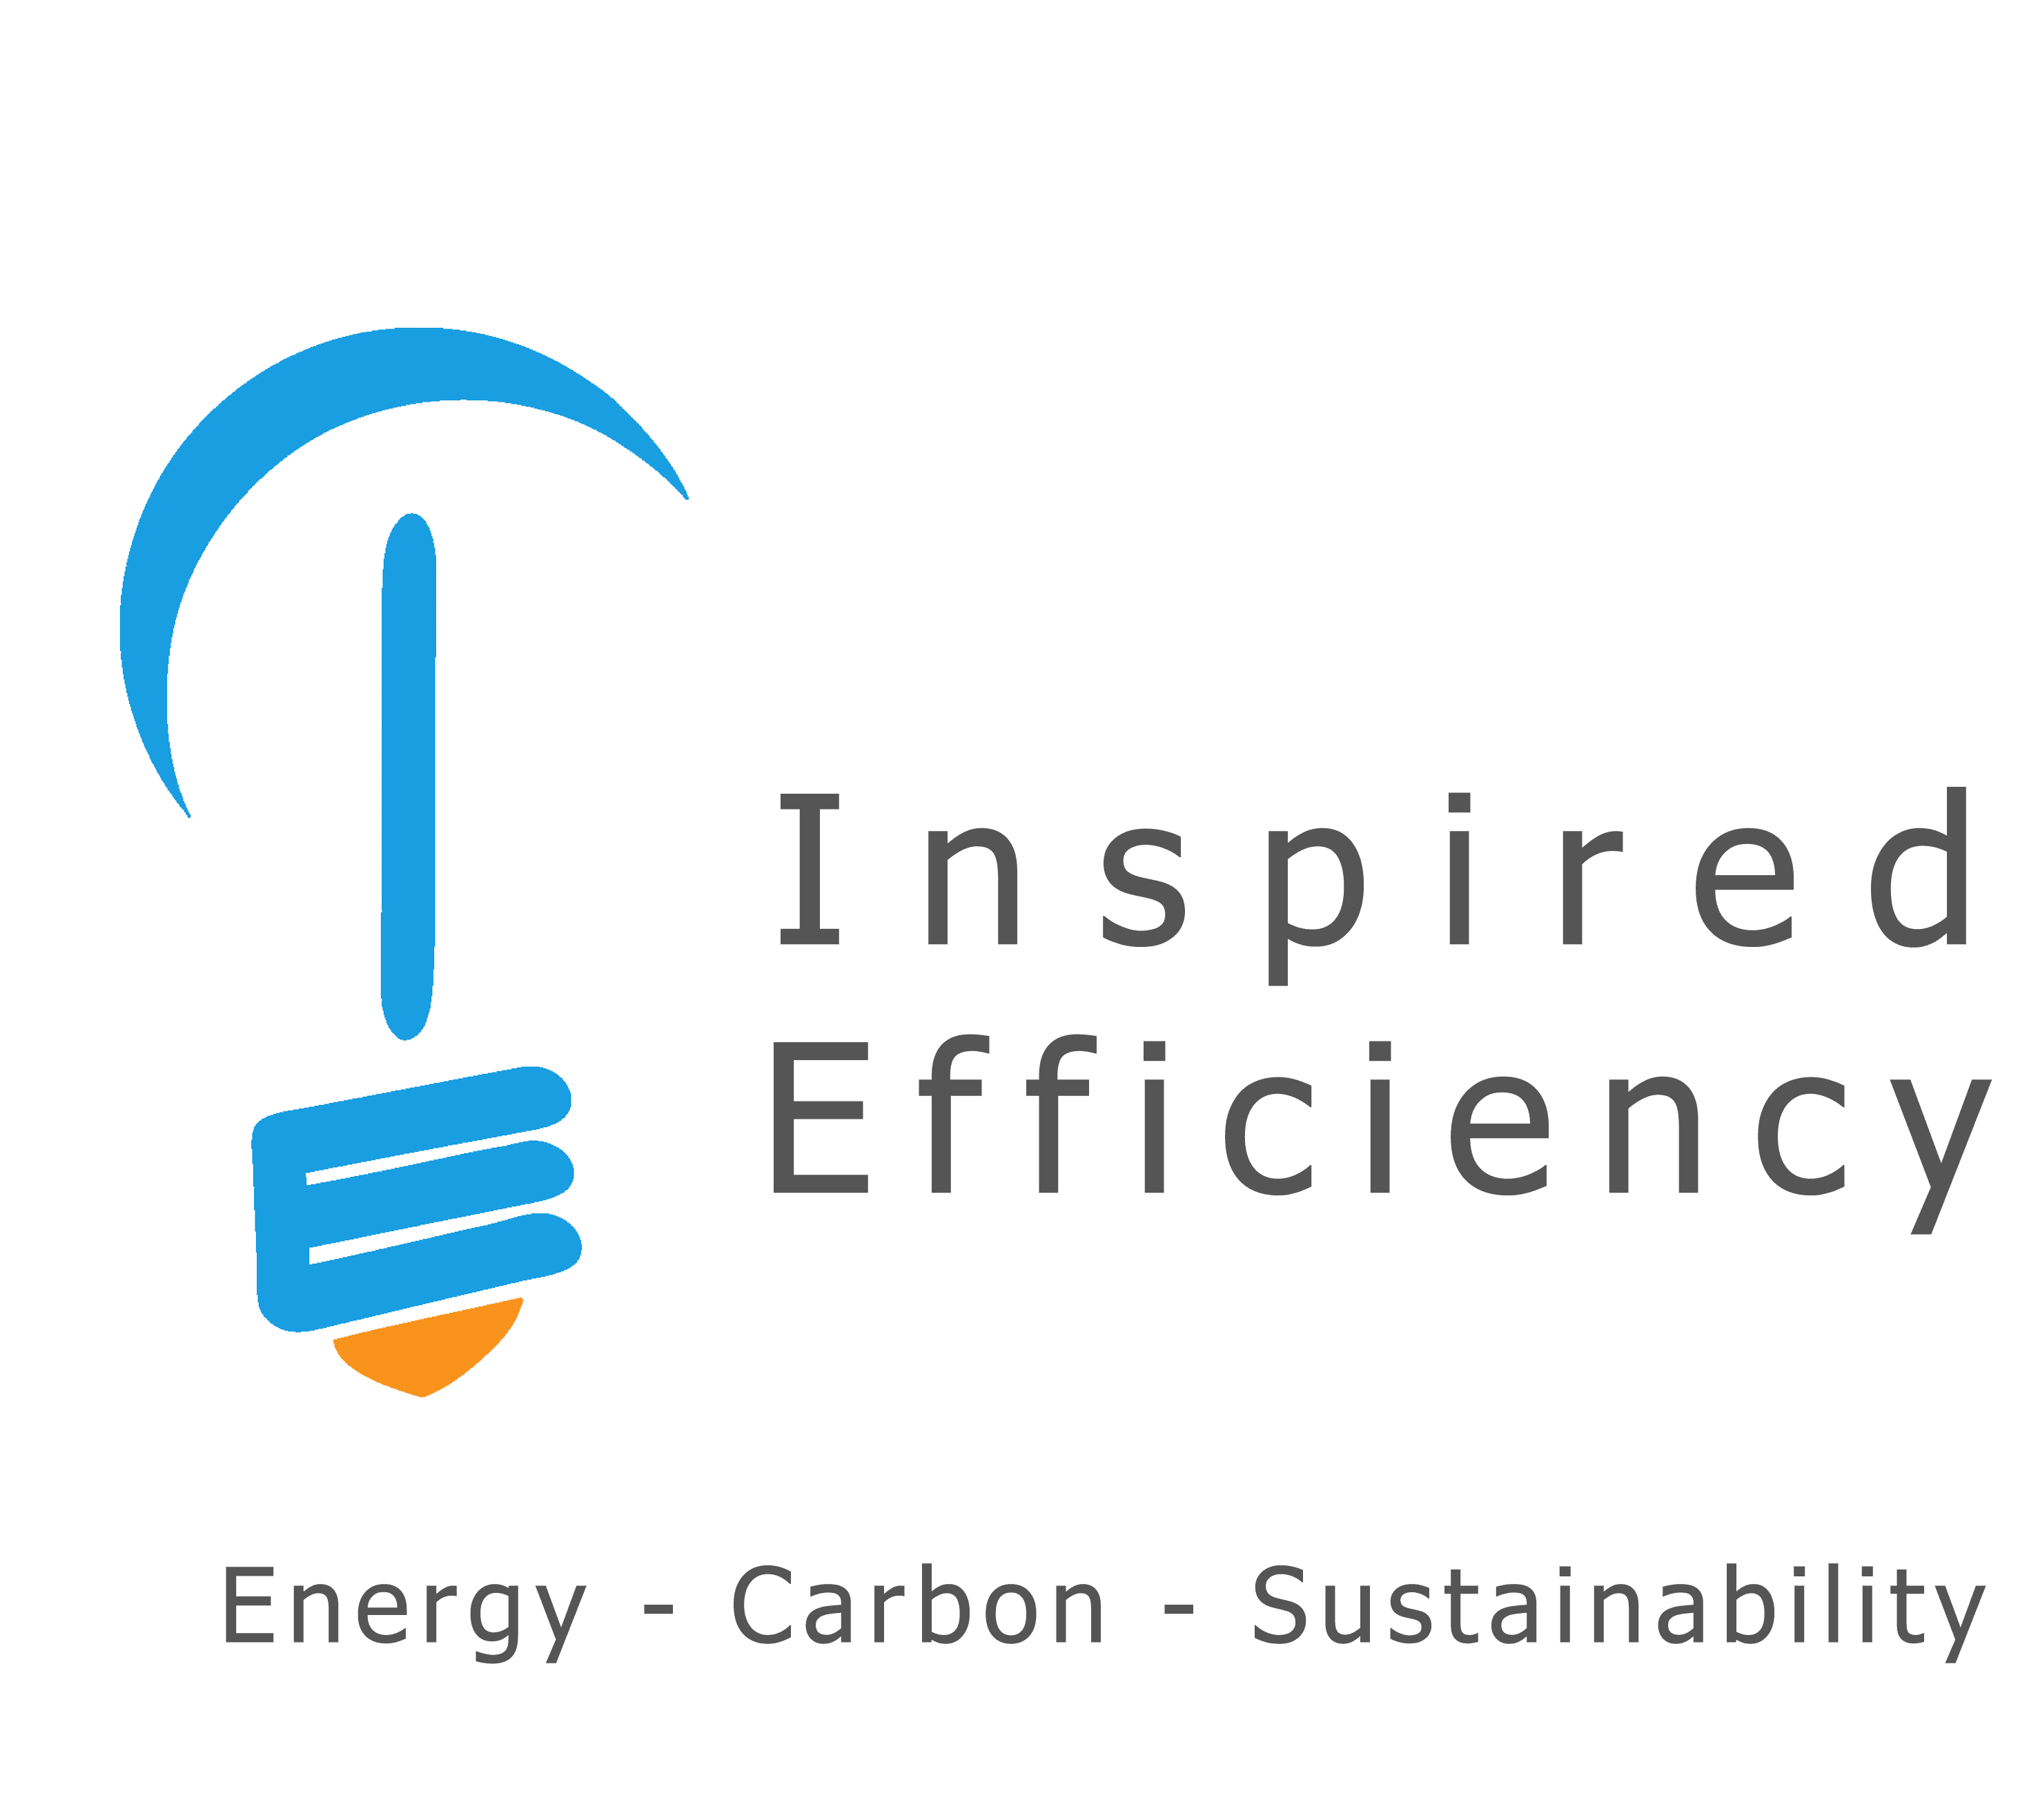 Inspired Efficiency Matt Fulford logo